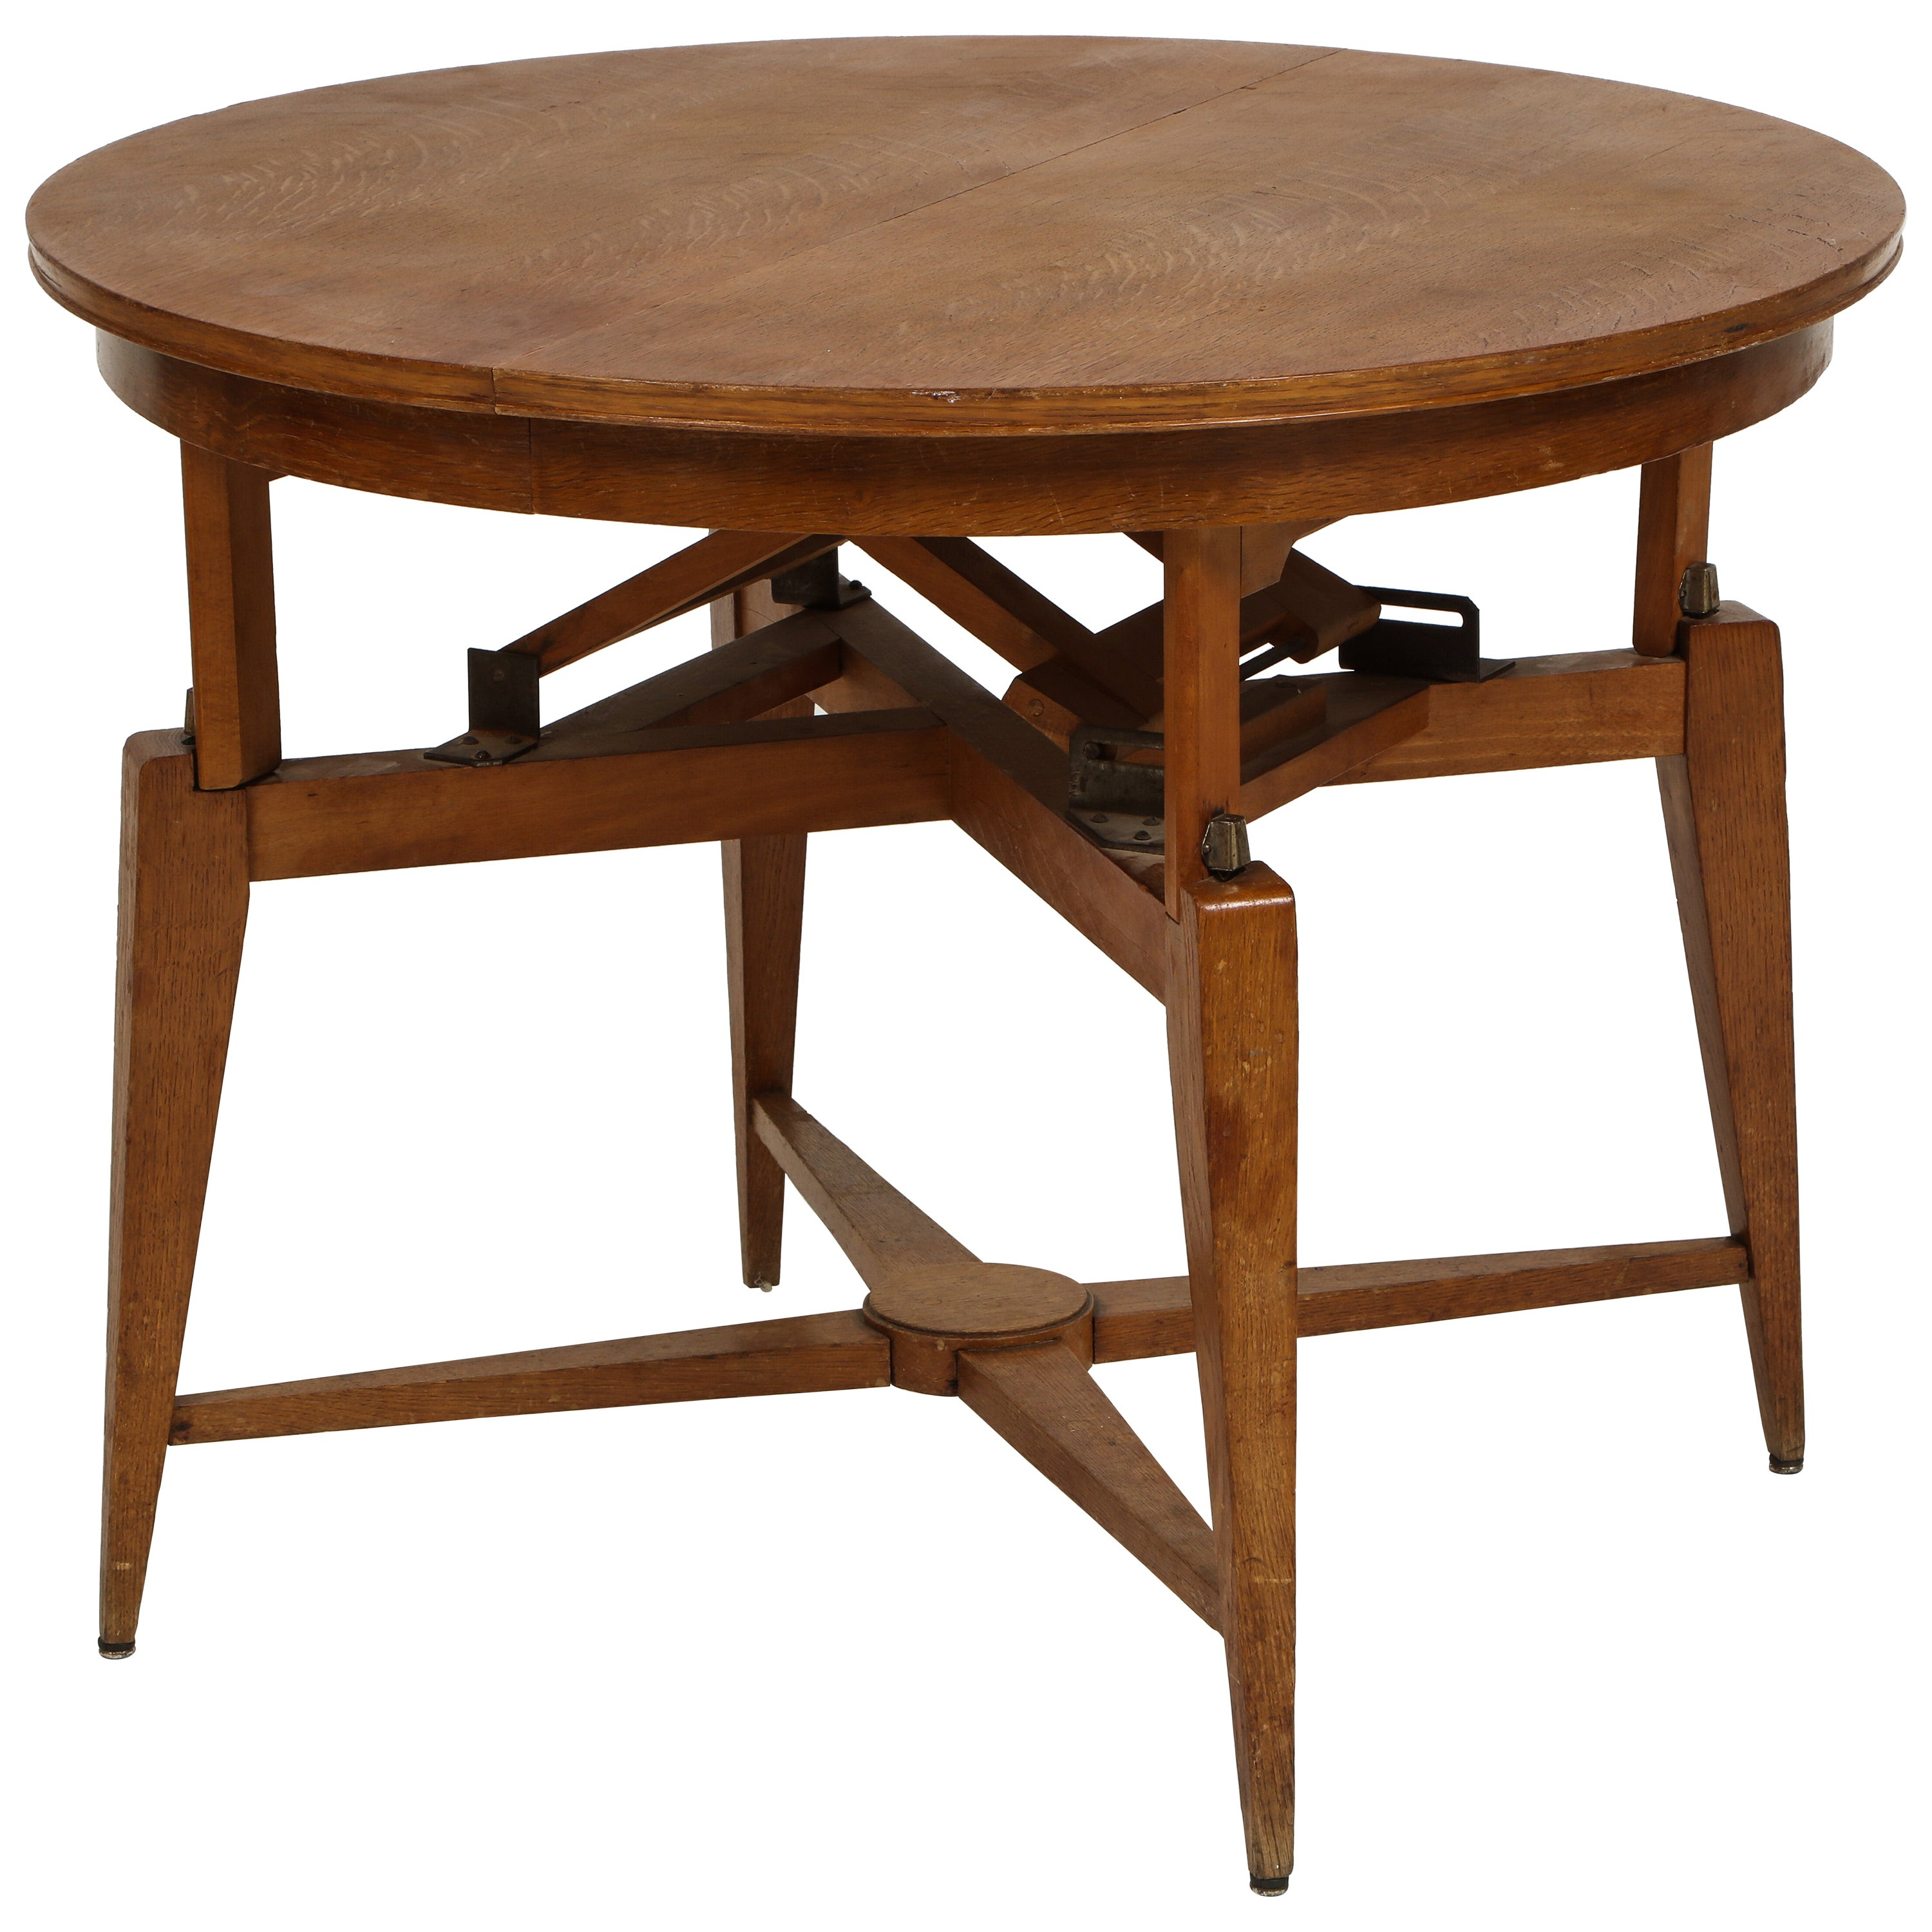 Marcel Gascoin 1950s Wood Coffee Centre Dining Table, Midcentury, France